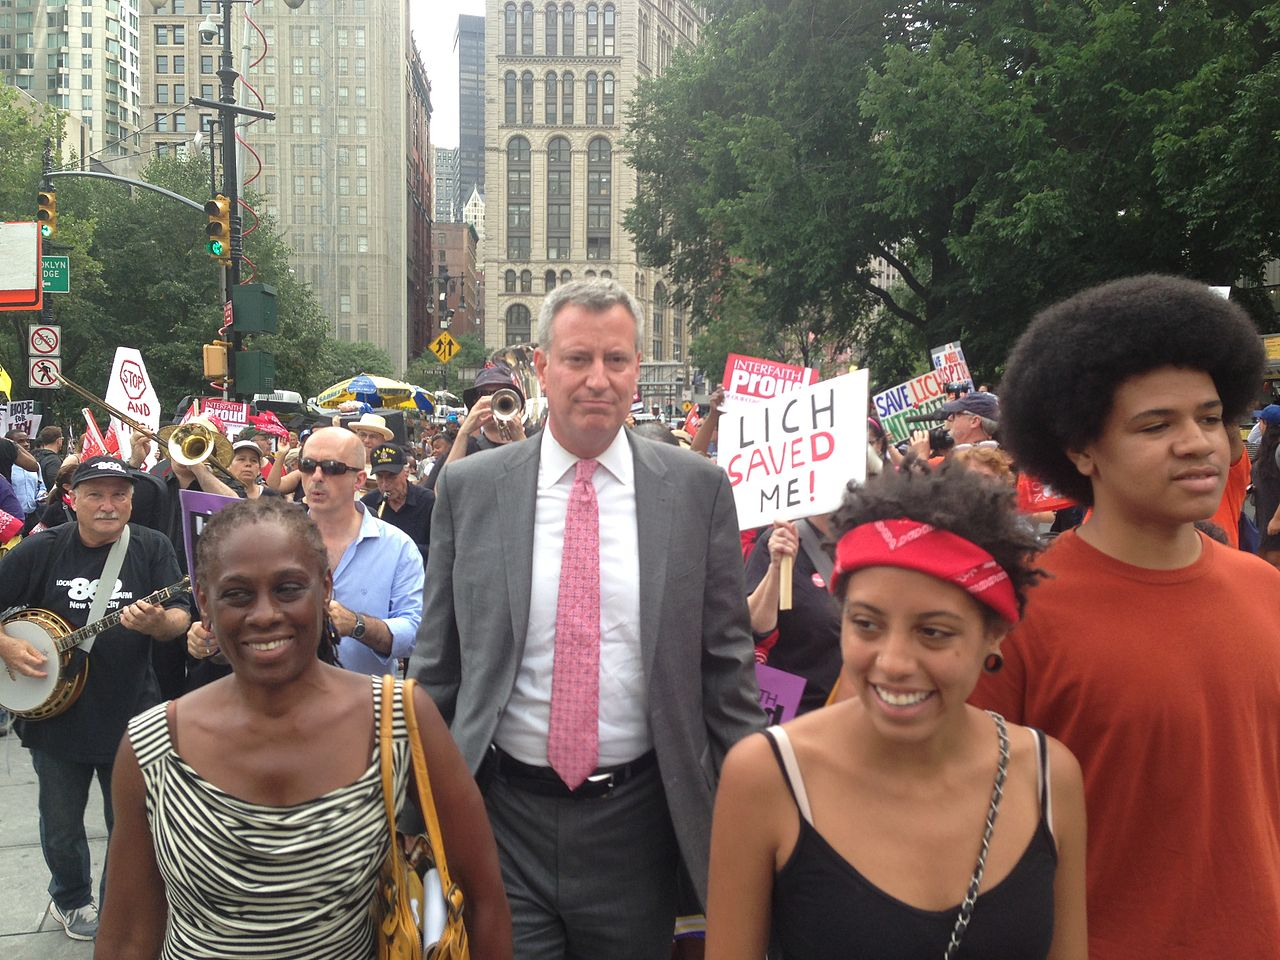 Image: New York's Mayor de Blasio condemned as a bigot for horrific discrimination against Asians and whites entering public schools